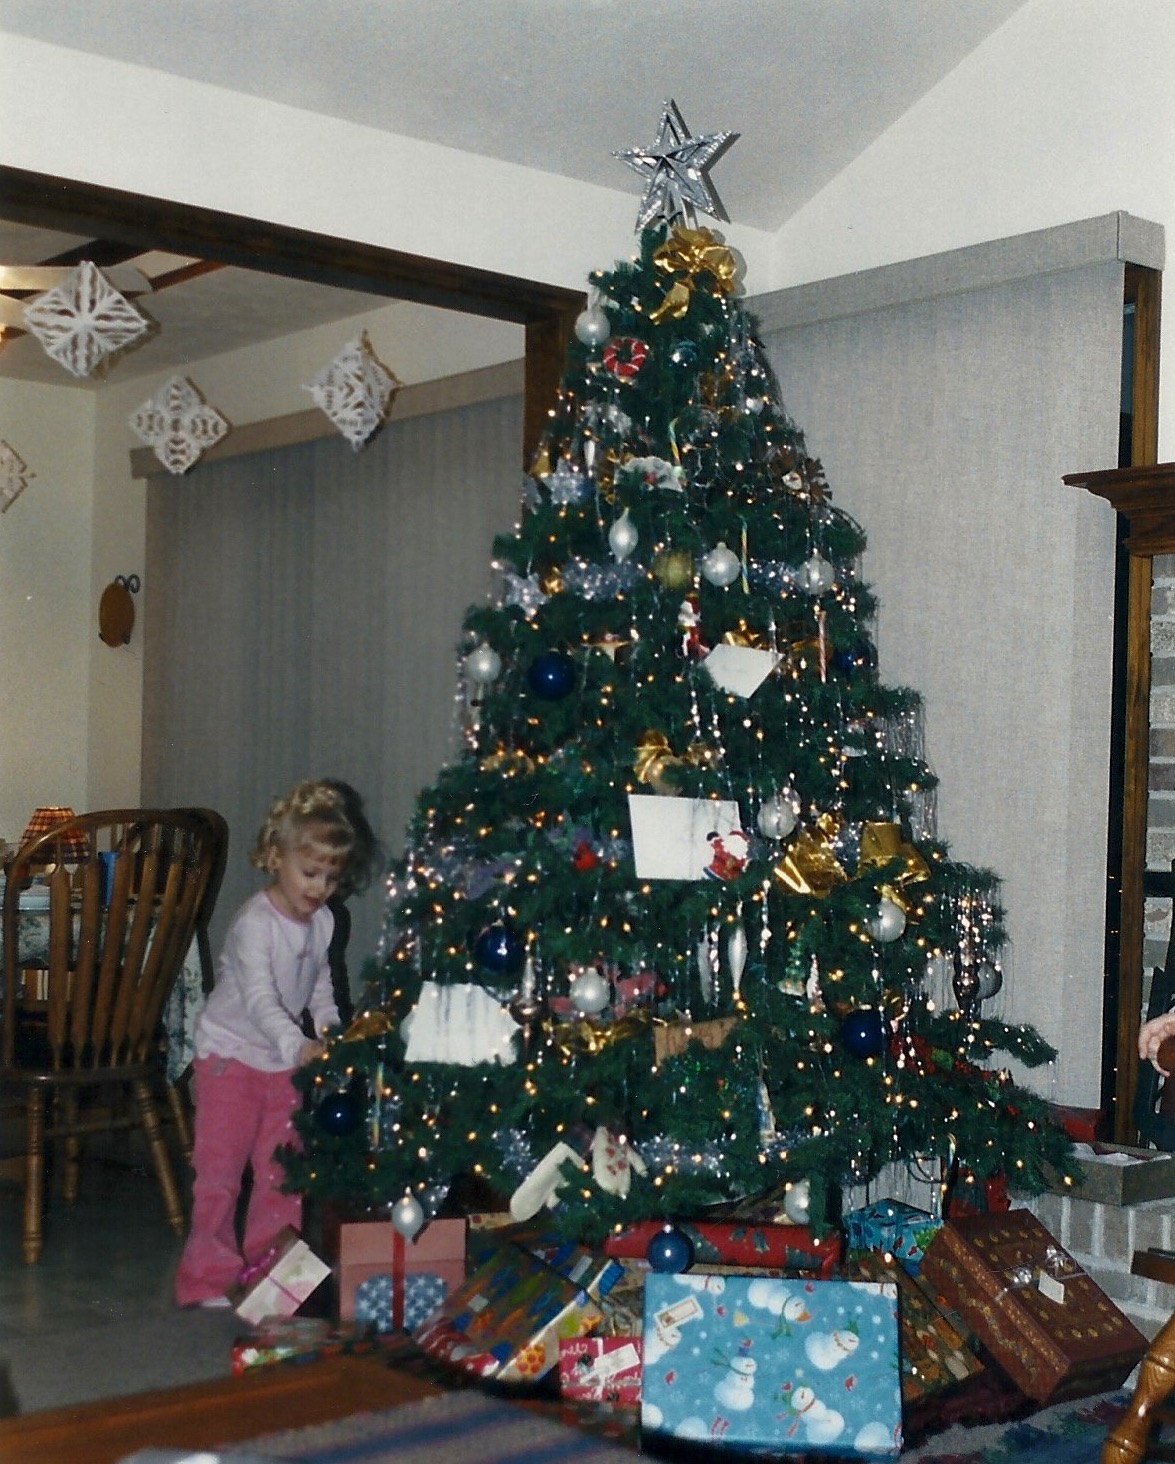 A girl looking at presents under a Christmas tree